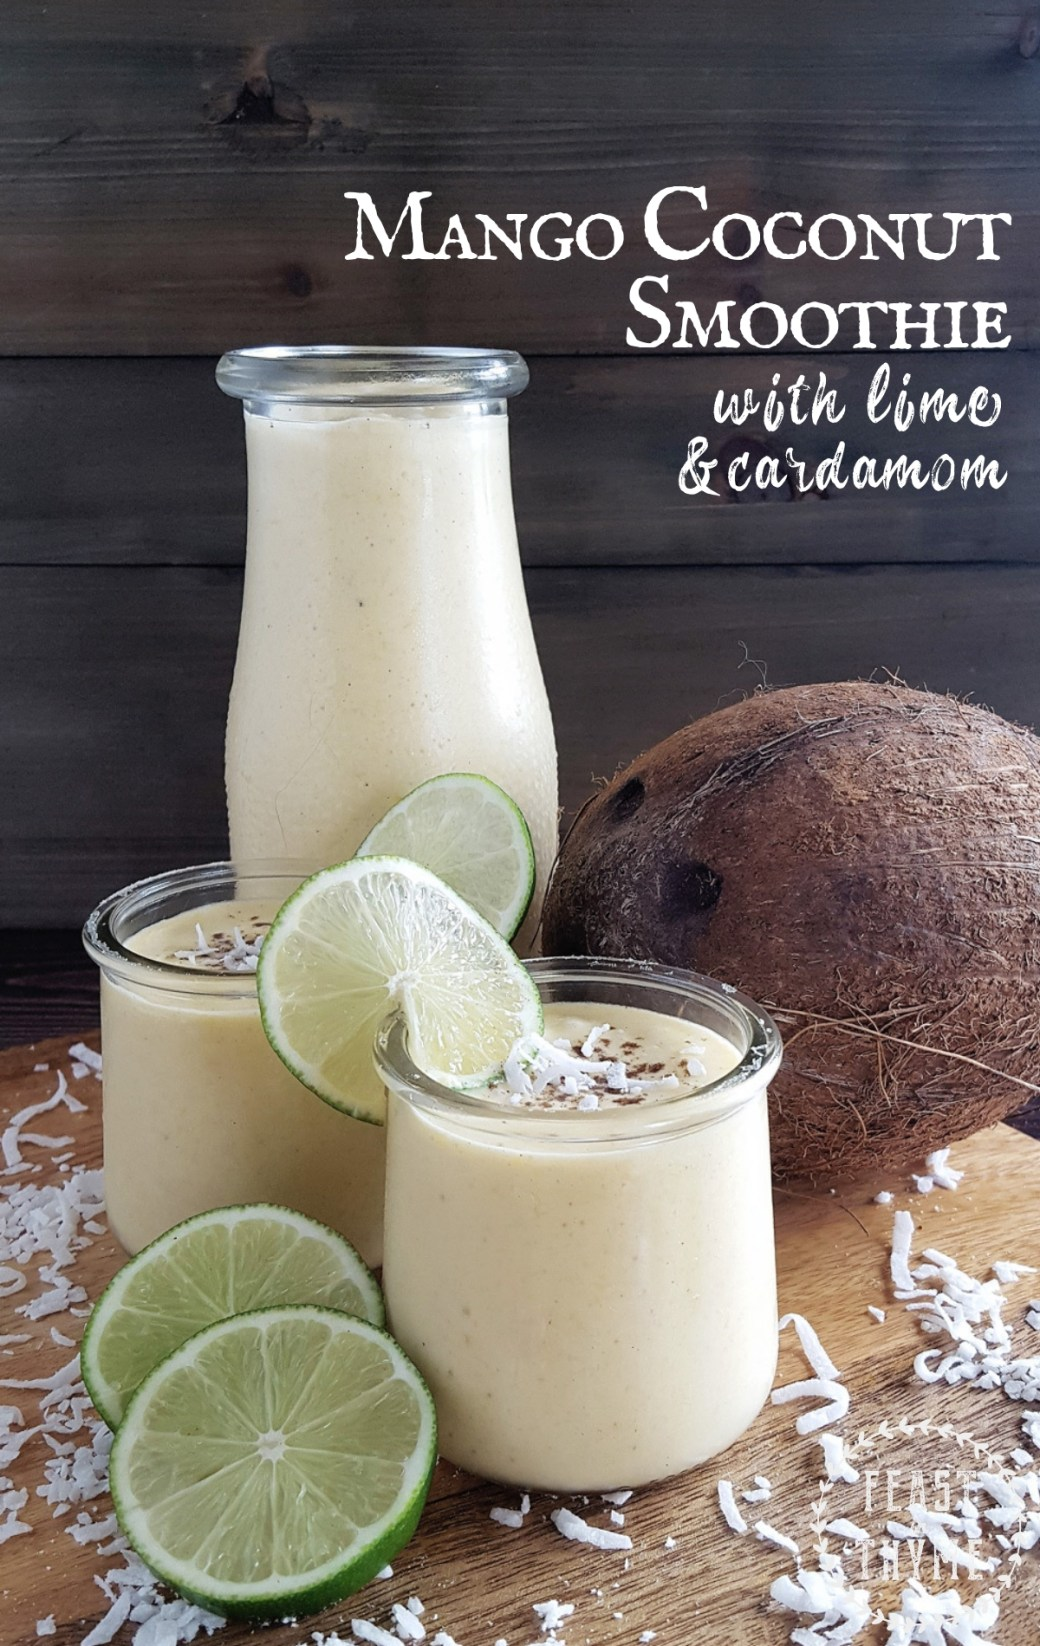 With the brightness of lime juice and a dash of cardamom spice, this creamy mango and coconut smoothie is a cool and refreshing drink on a hot summer day. #fictionalfood #larpfood #mango #coconut #drink | FeastInThyme.com